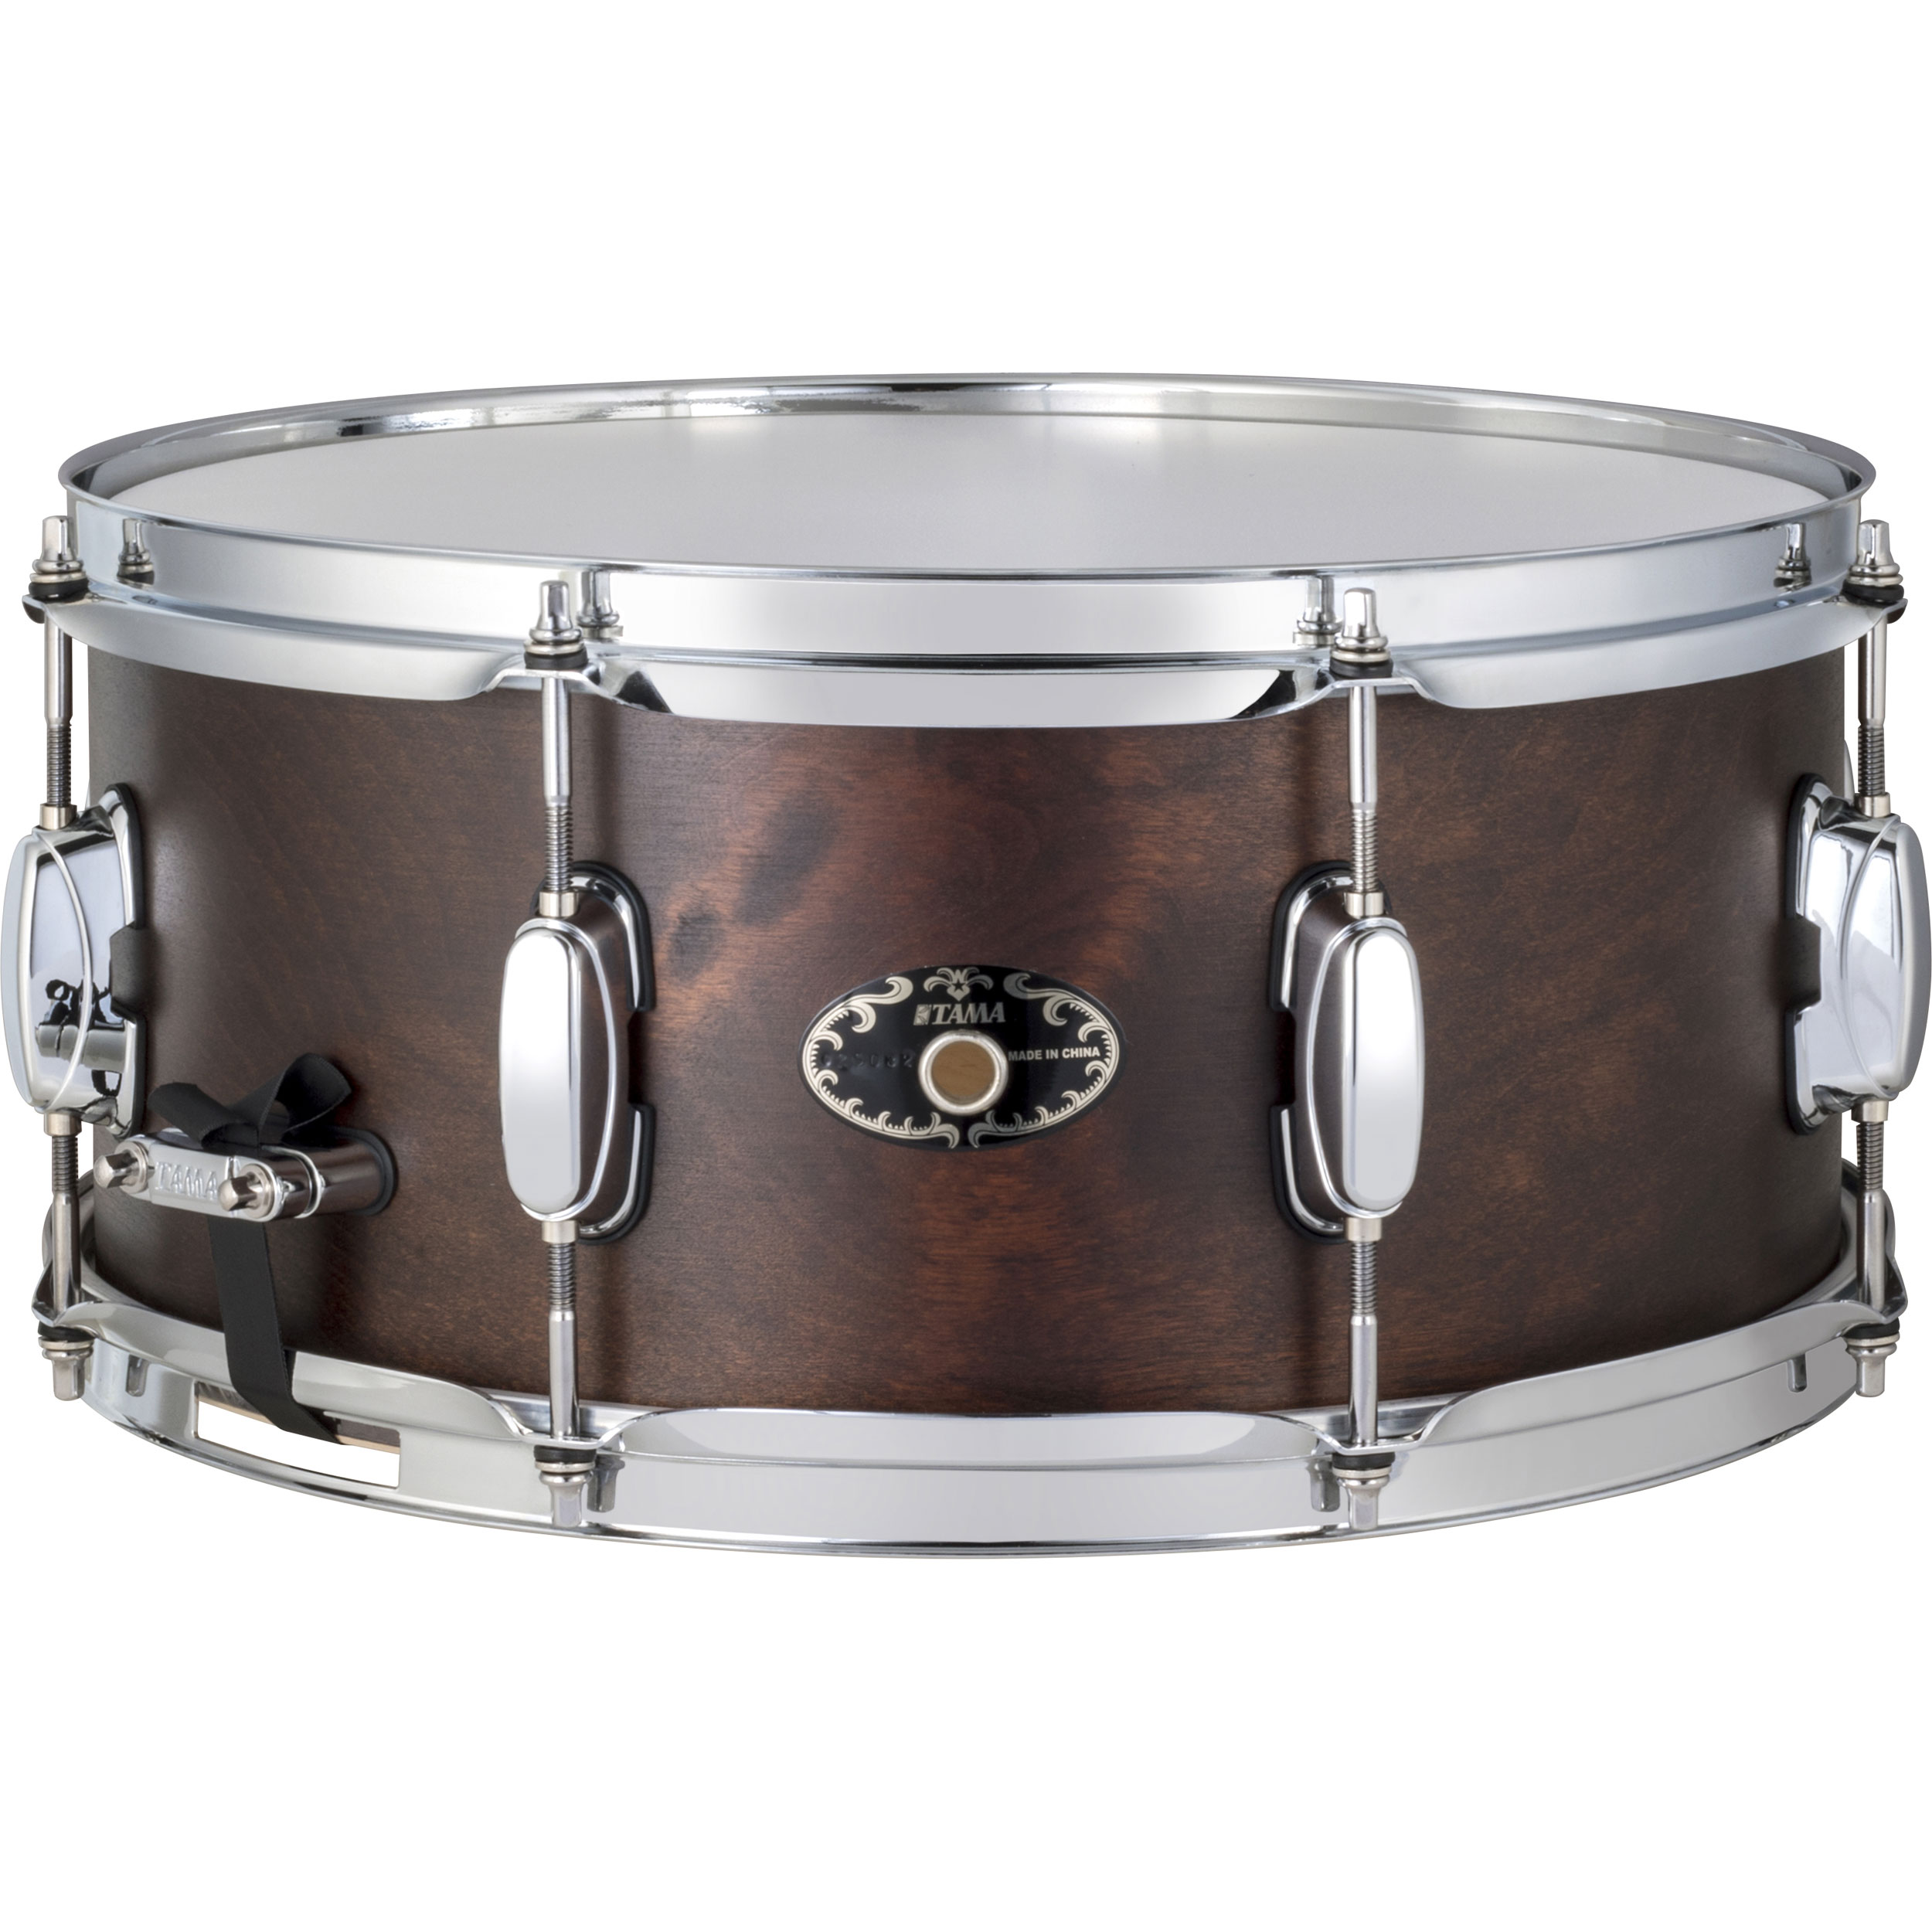 "Tama 6.5"" x 14"" Limited Edition Artwood Maple/Birch Snare Drum"